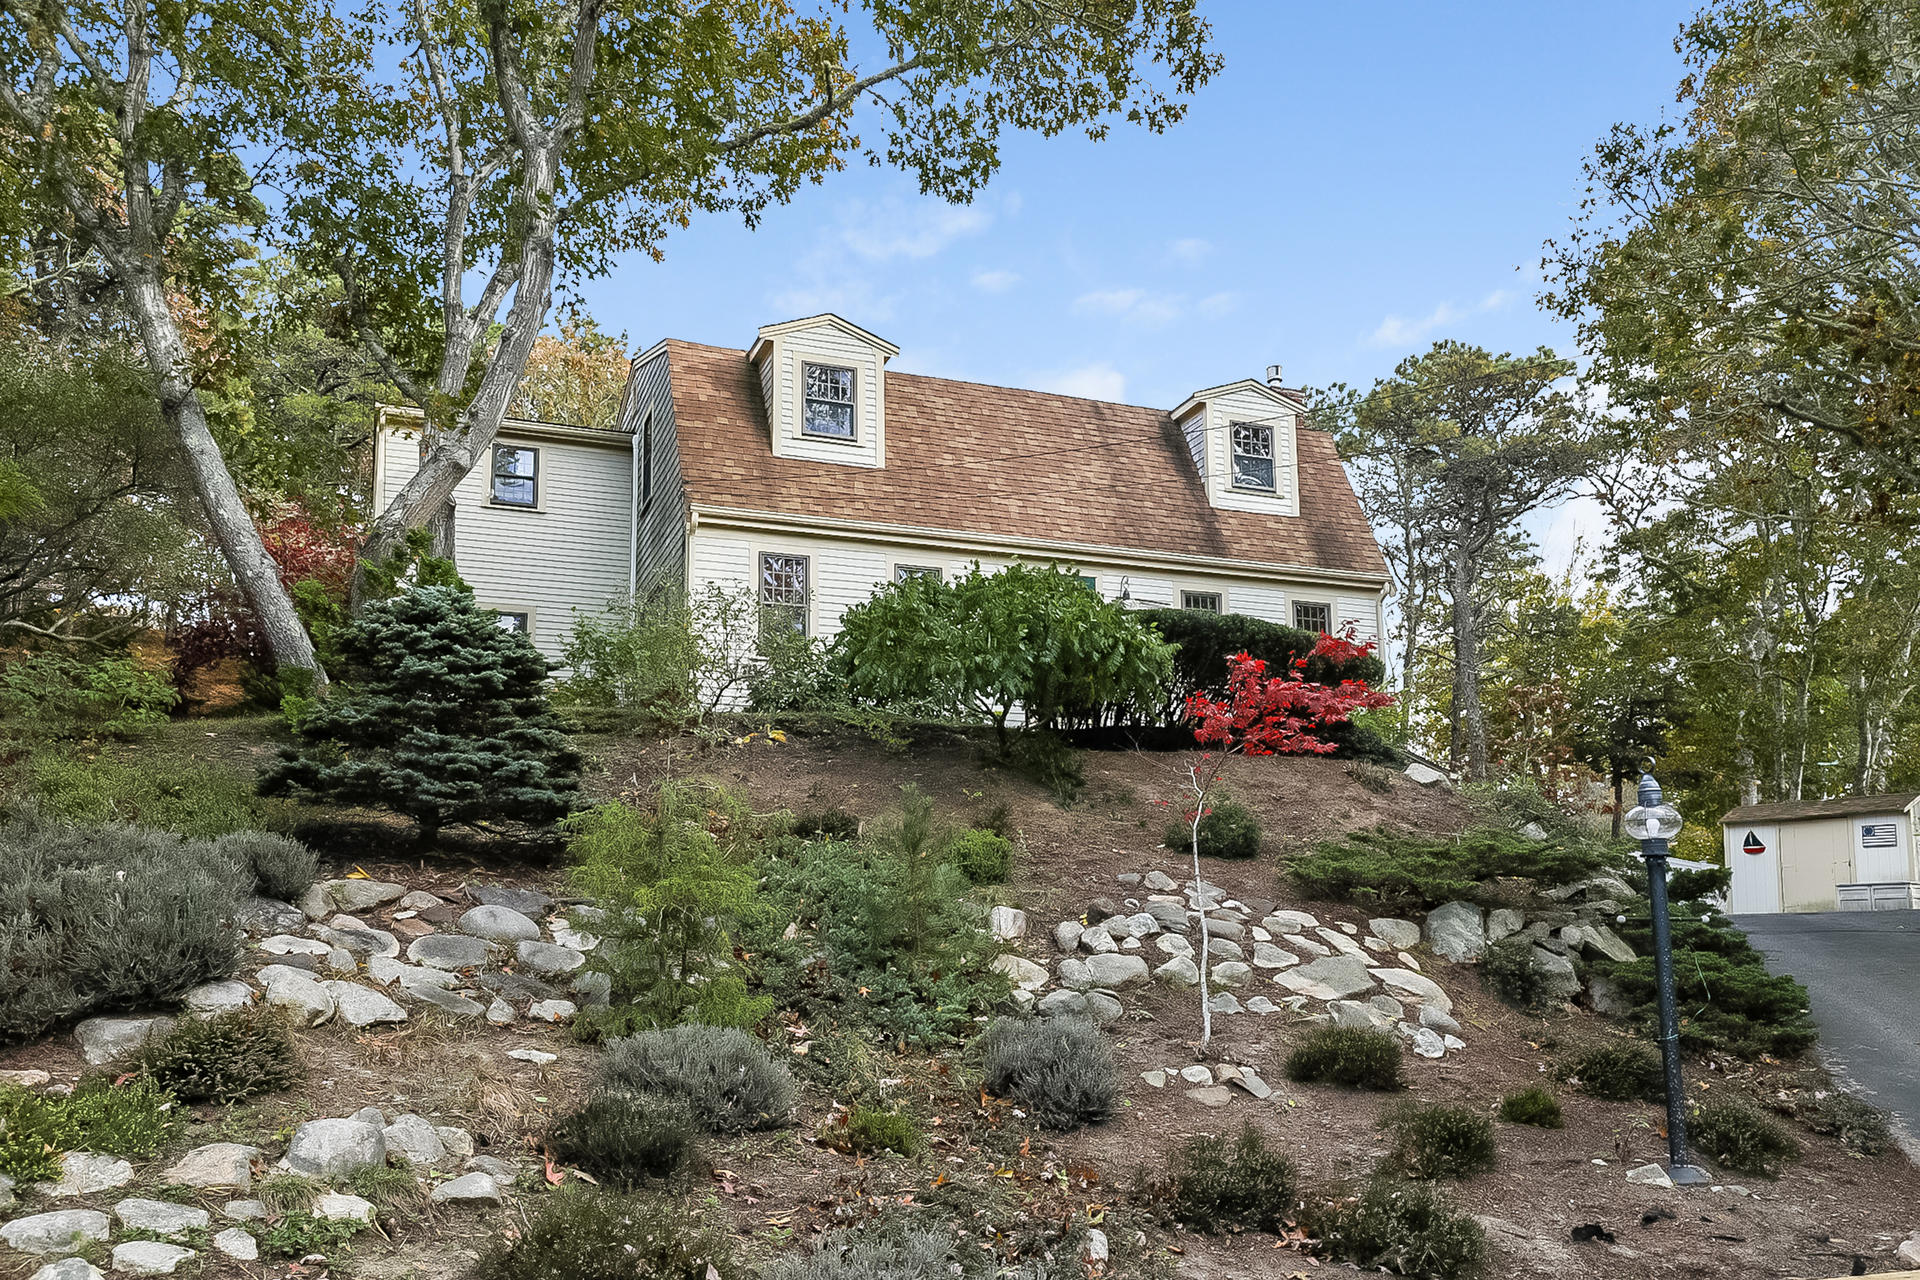 121 Wood Valley Road, Chatham MA, 02633 sales details